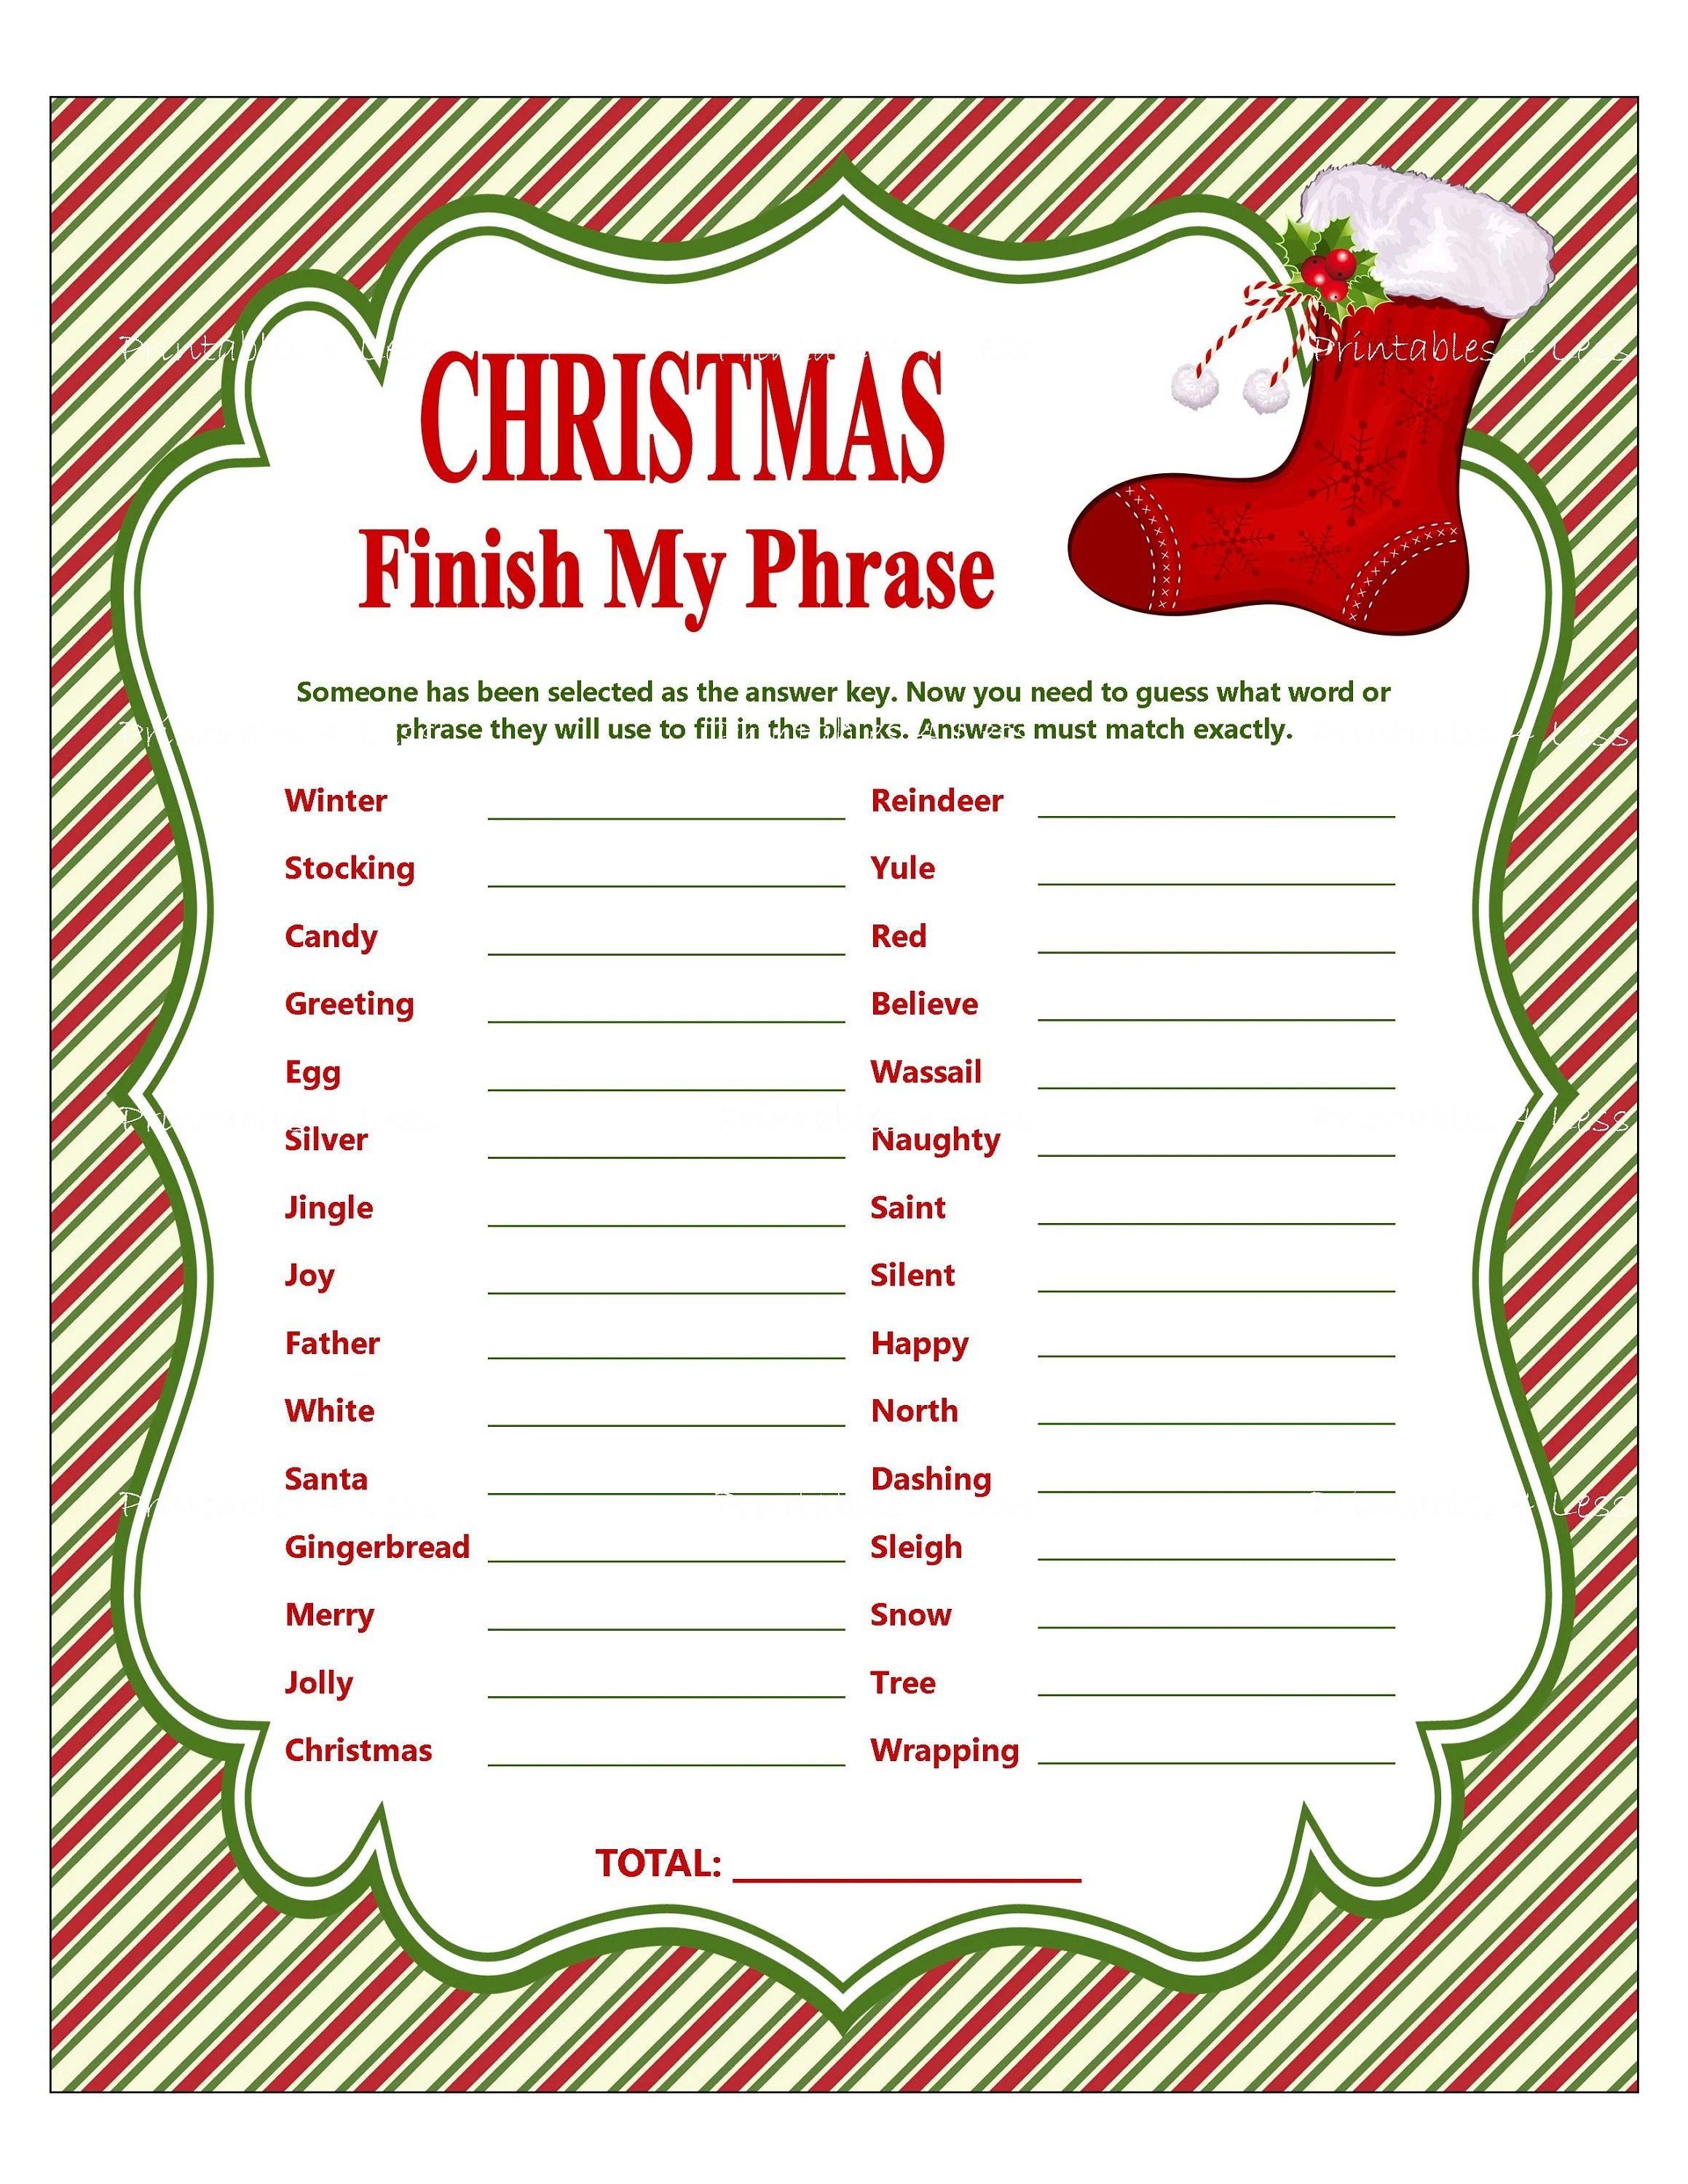 Christmas Finish My Phrase